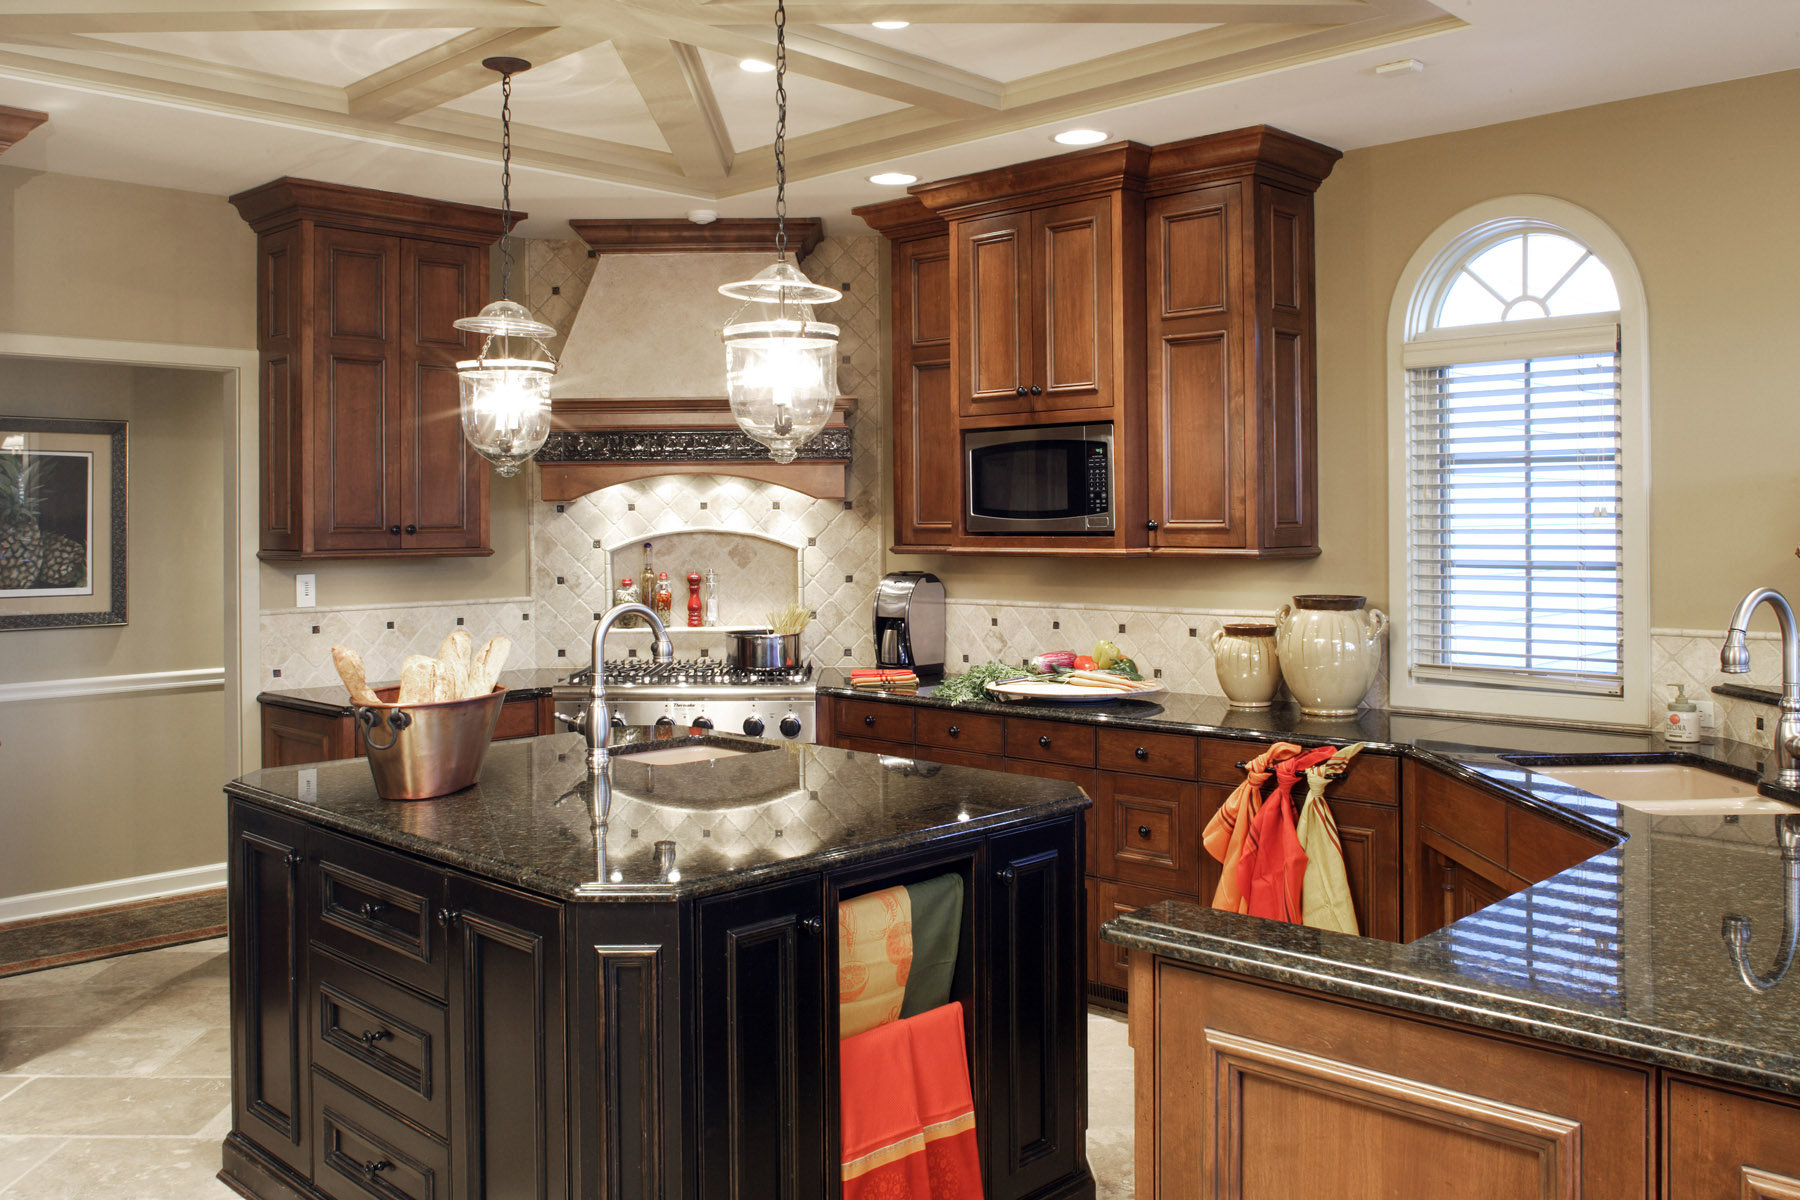 Granite-Countertops-Island.jpg